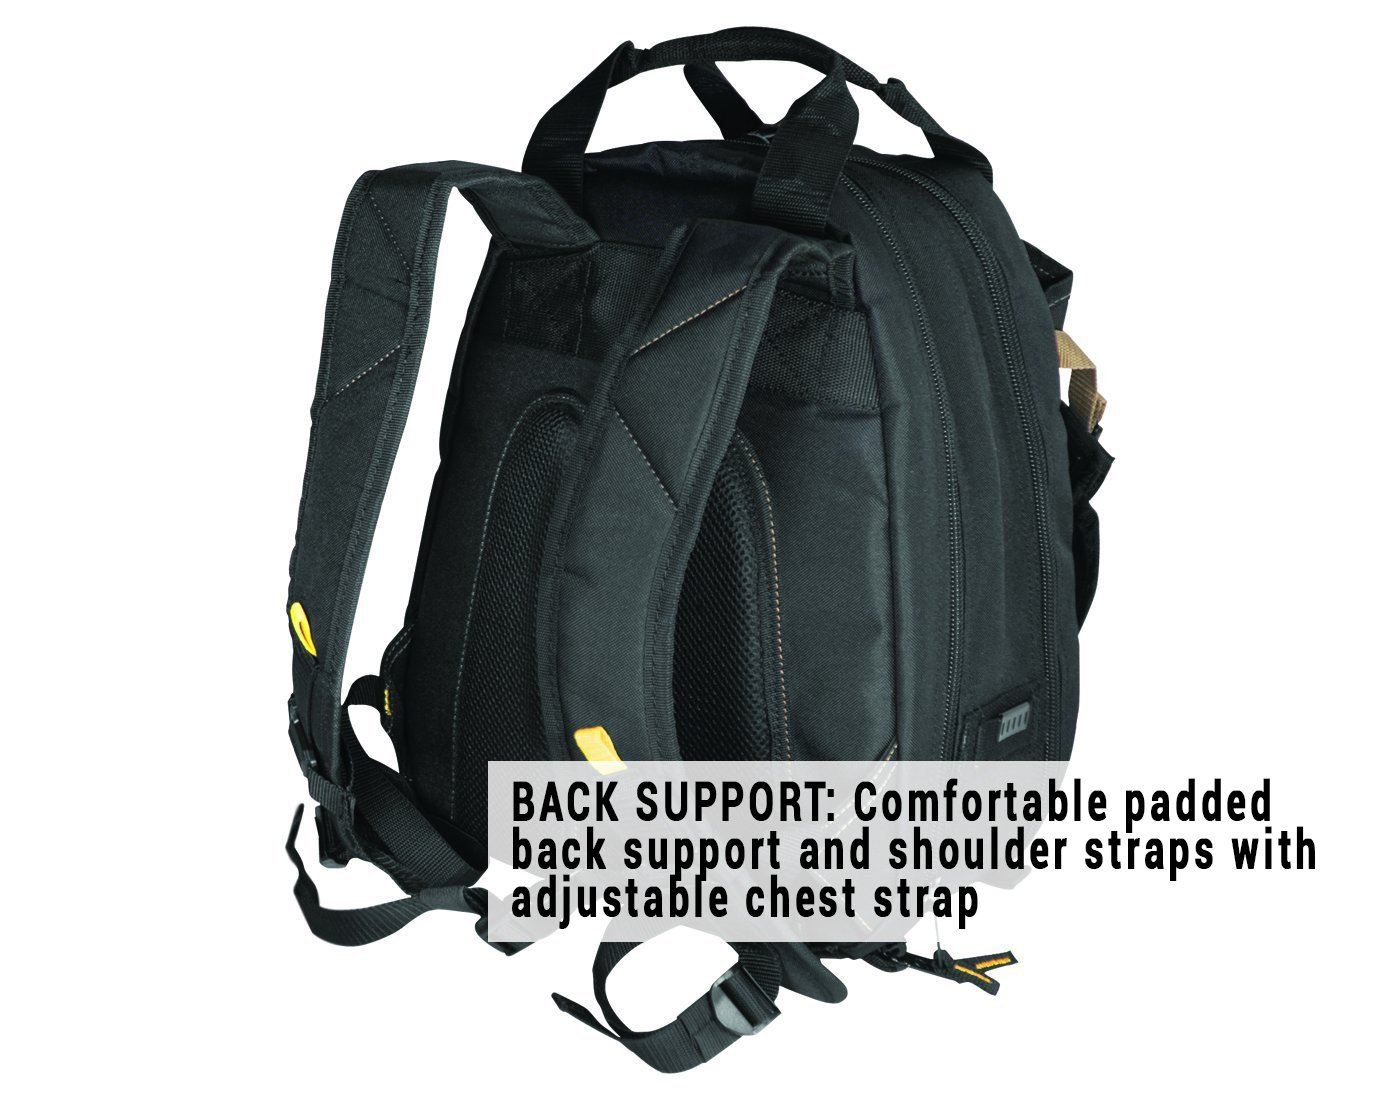 CLC 1134 Carpenter's Tool Backpack with 44 Pockets and Padded Back Support by Custom Leathercraft (Image #4)